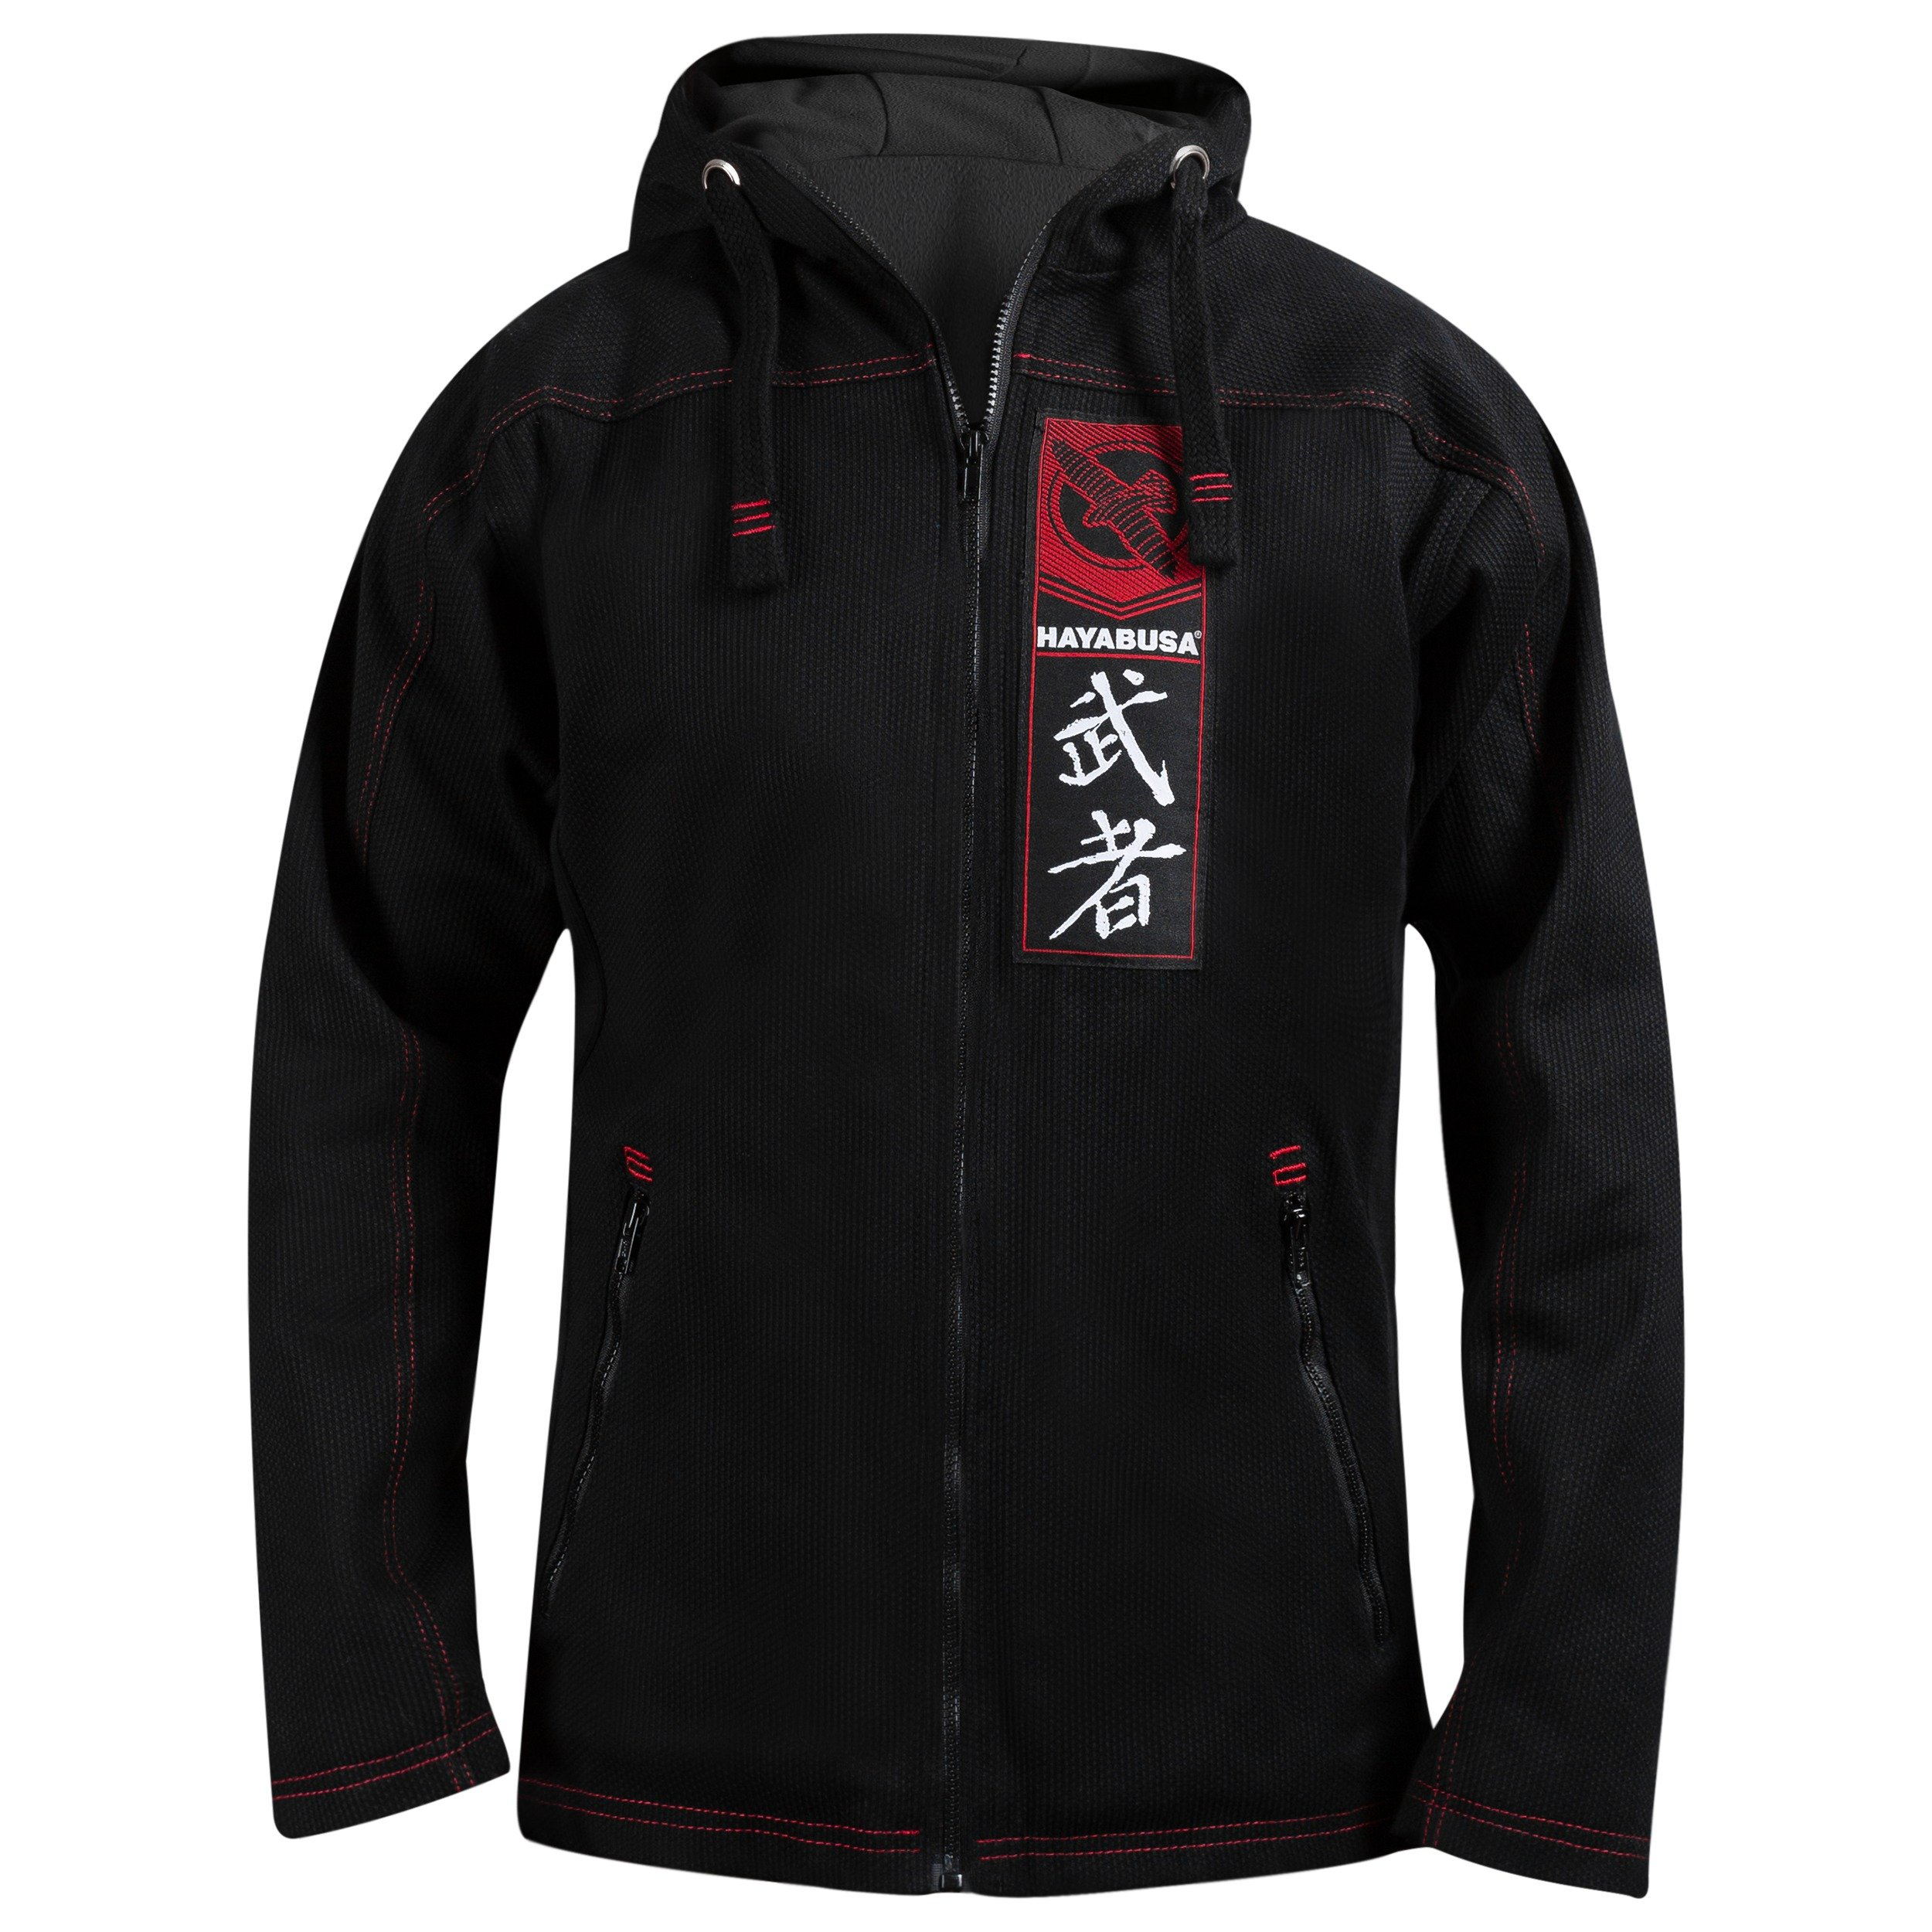 Hayabusa Cotton Uwagi Pro Gi Jacket 2.0, Black, Medium by Hayabusa